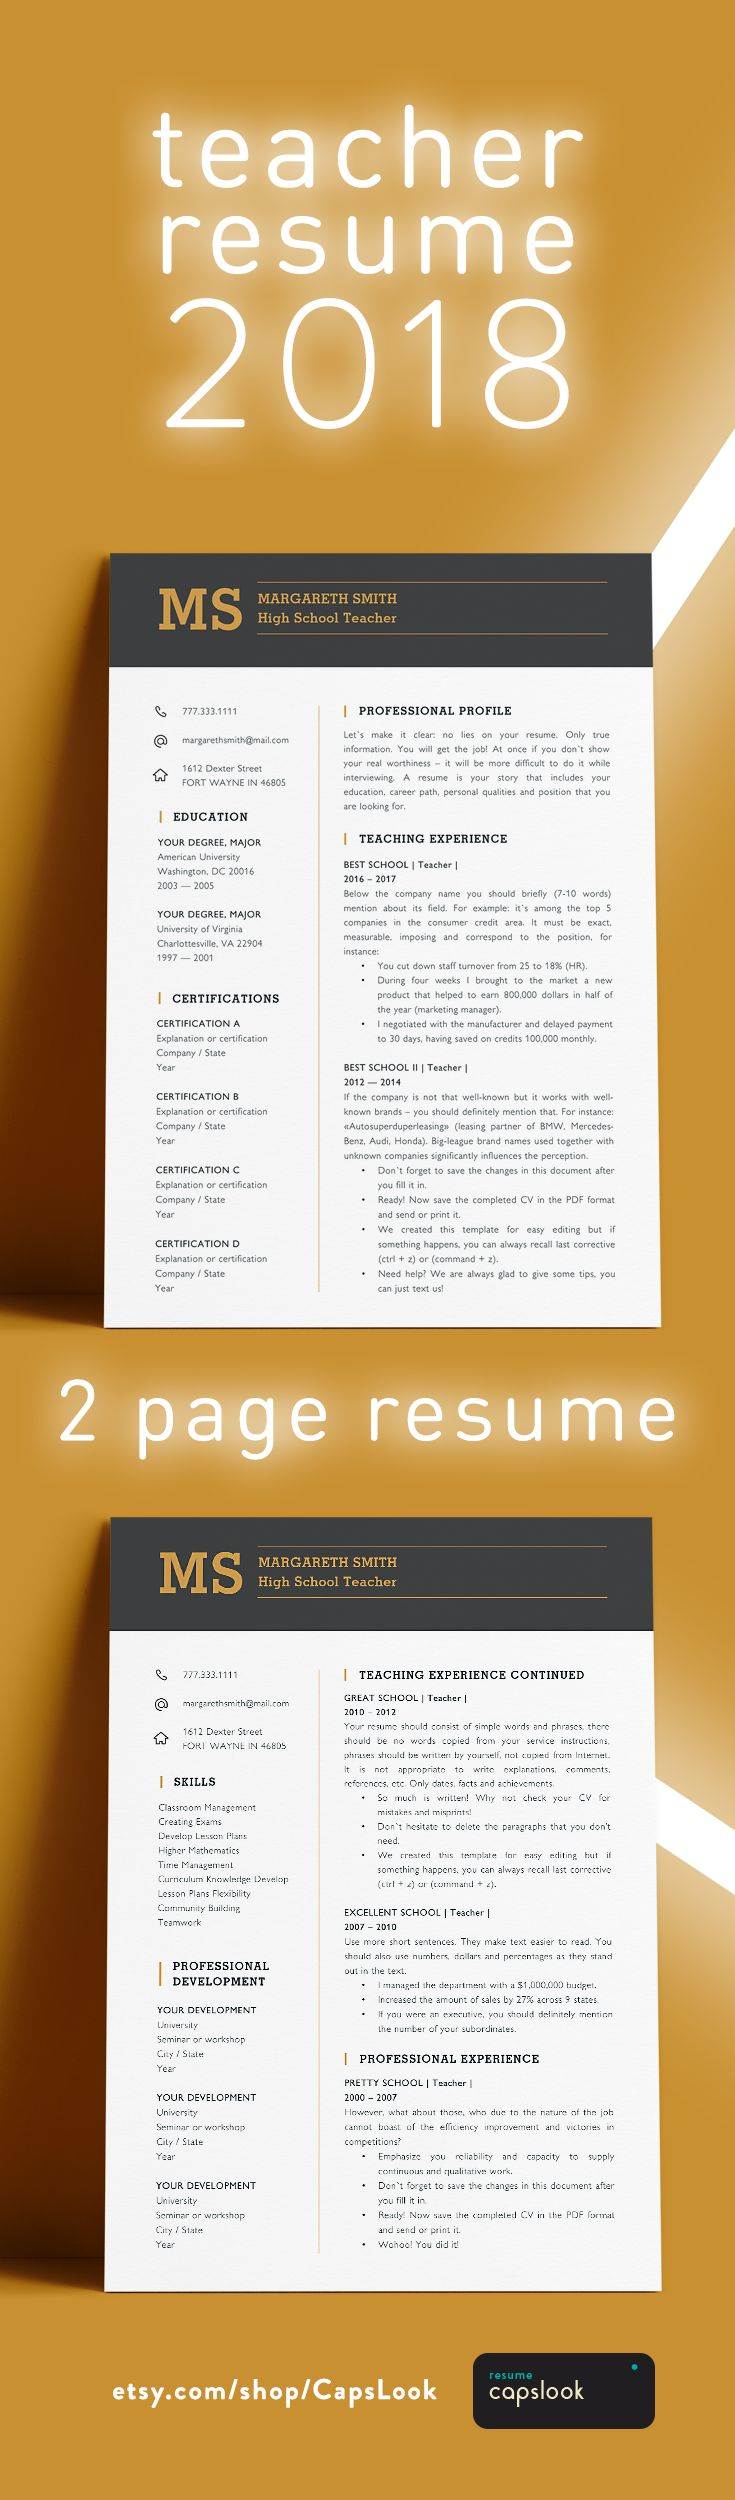 Resume template for teacher 2018.  2 page resume. Instant download and easy to use. Our mission  - Creating resumes that can make the way to a new job shorter and more creative Other teacher resumes → http://etsy.me/2nH74UY – Teacher Resume Template – Elementary, principal.